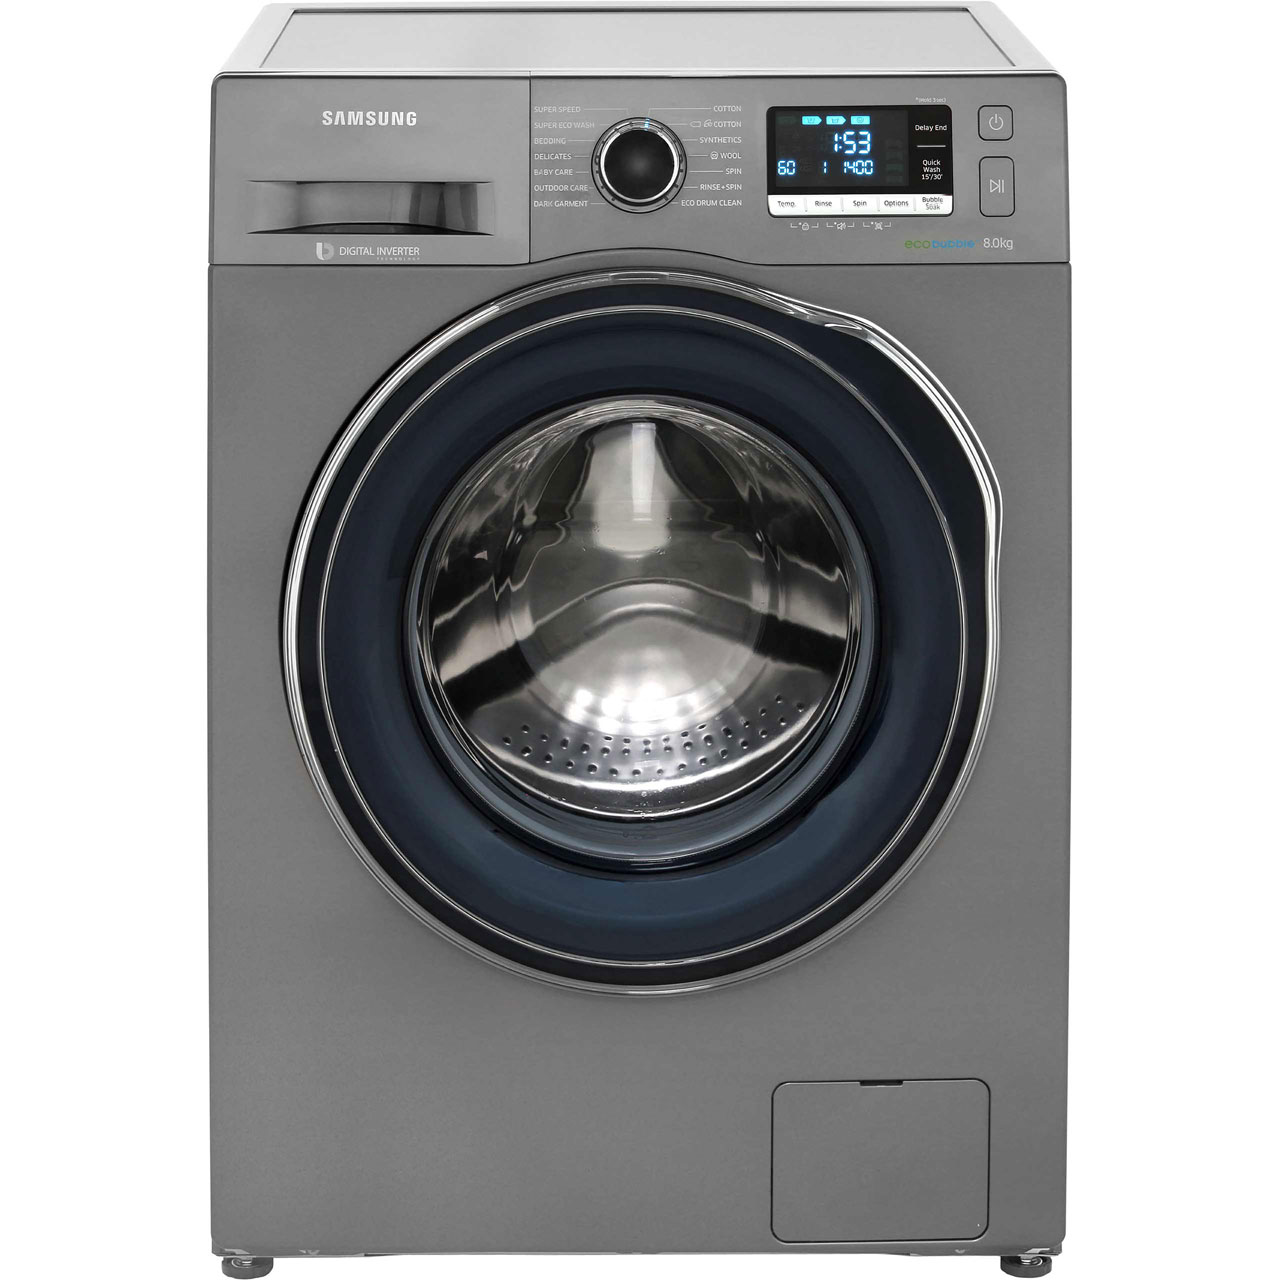 Samsung ecobubble™ WW80J6410CX 8Kg Washing Machine with 1400 rpm - Graphite  - A+++ Rated